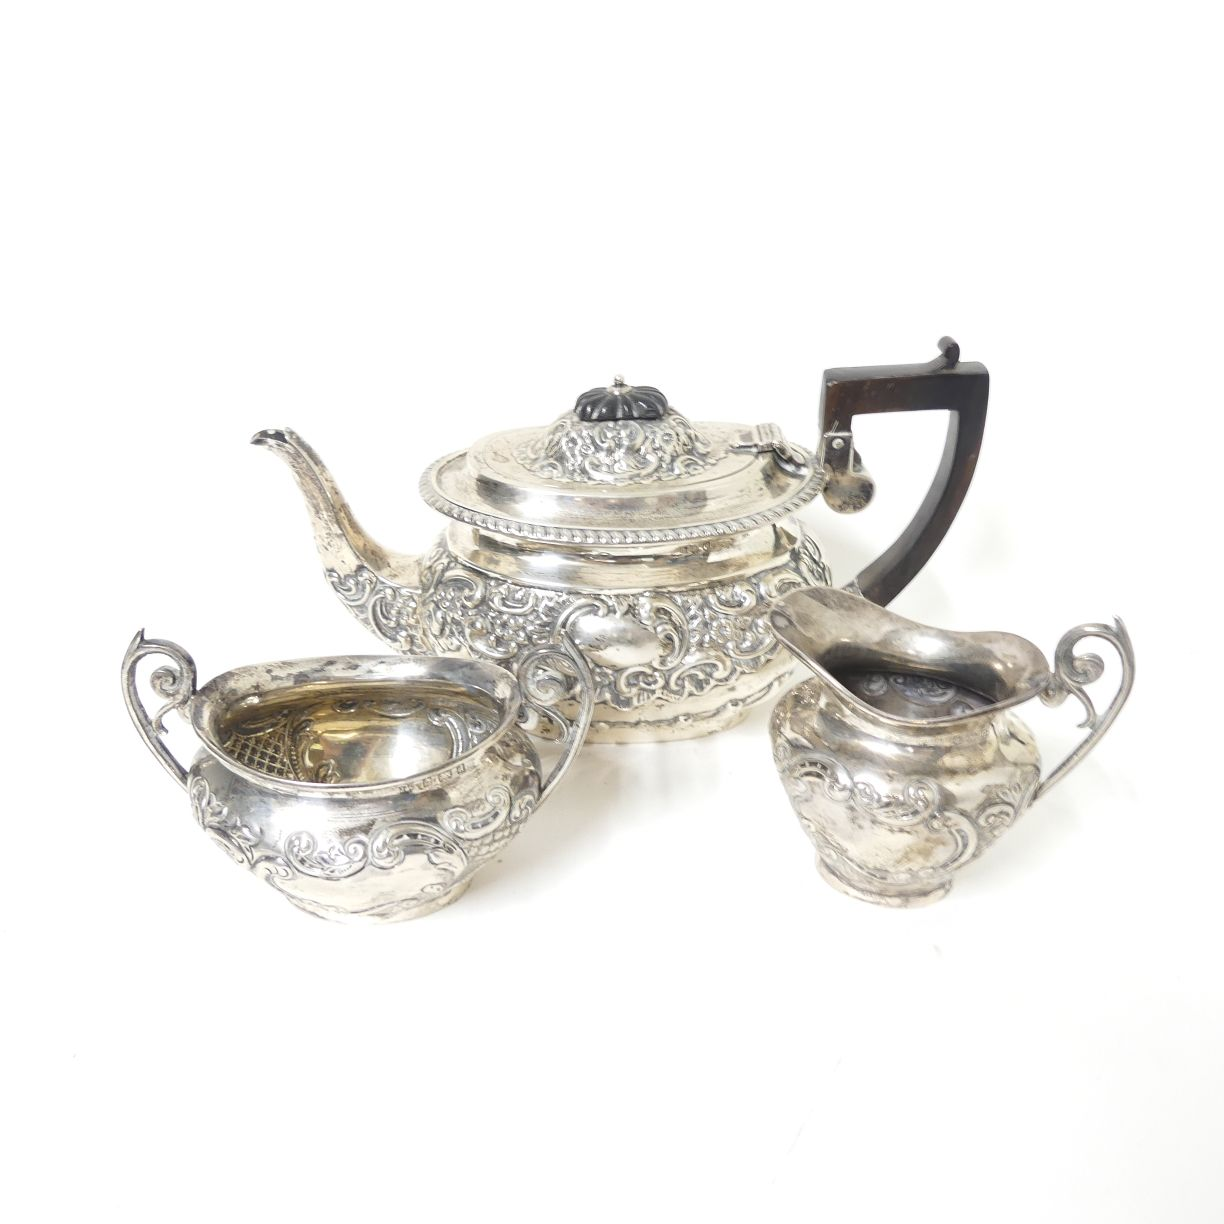 Silver - Decorative Arts #edwardianperiod